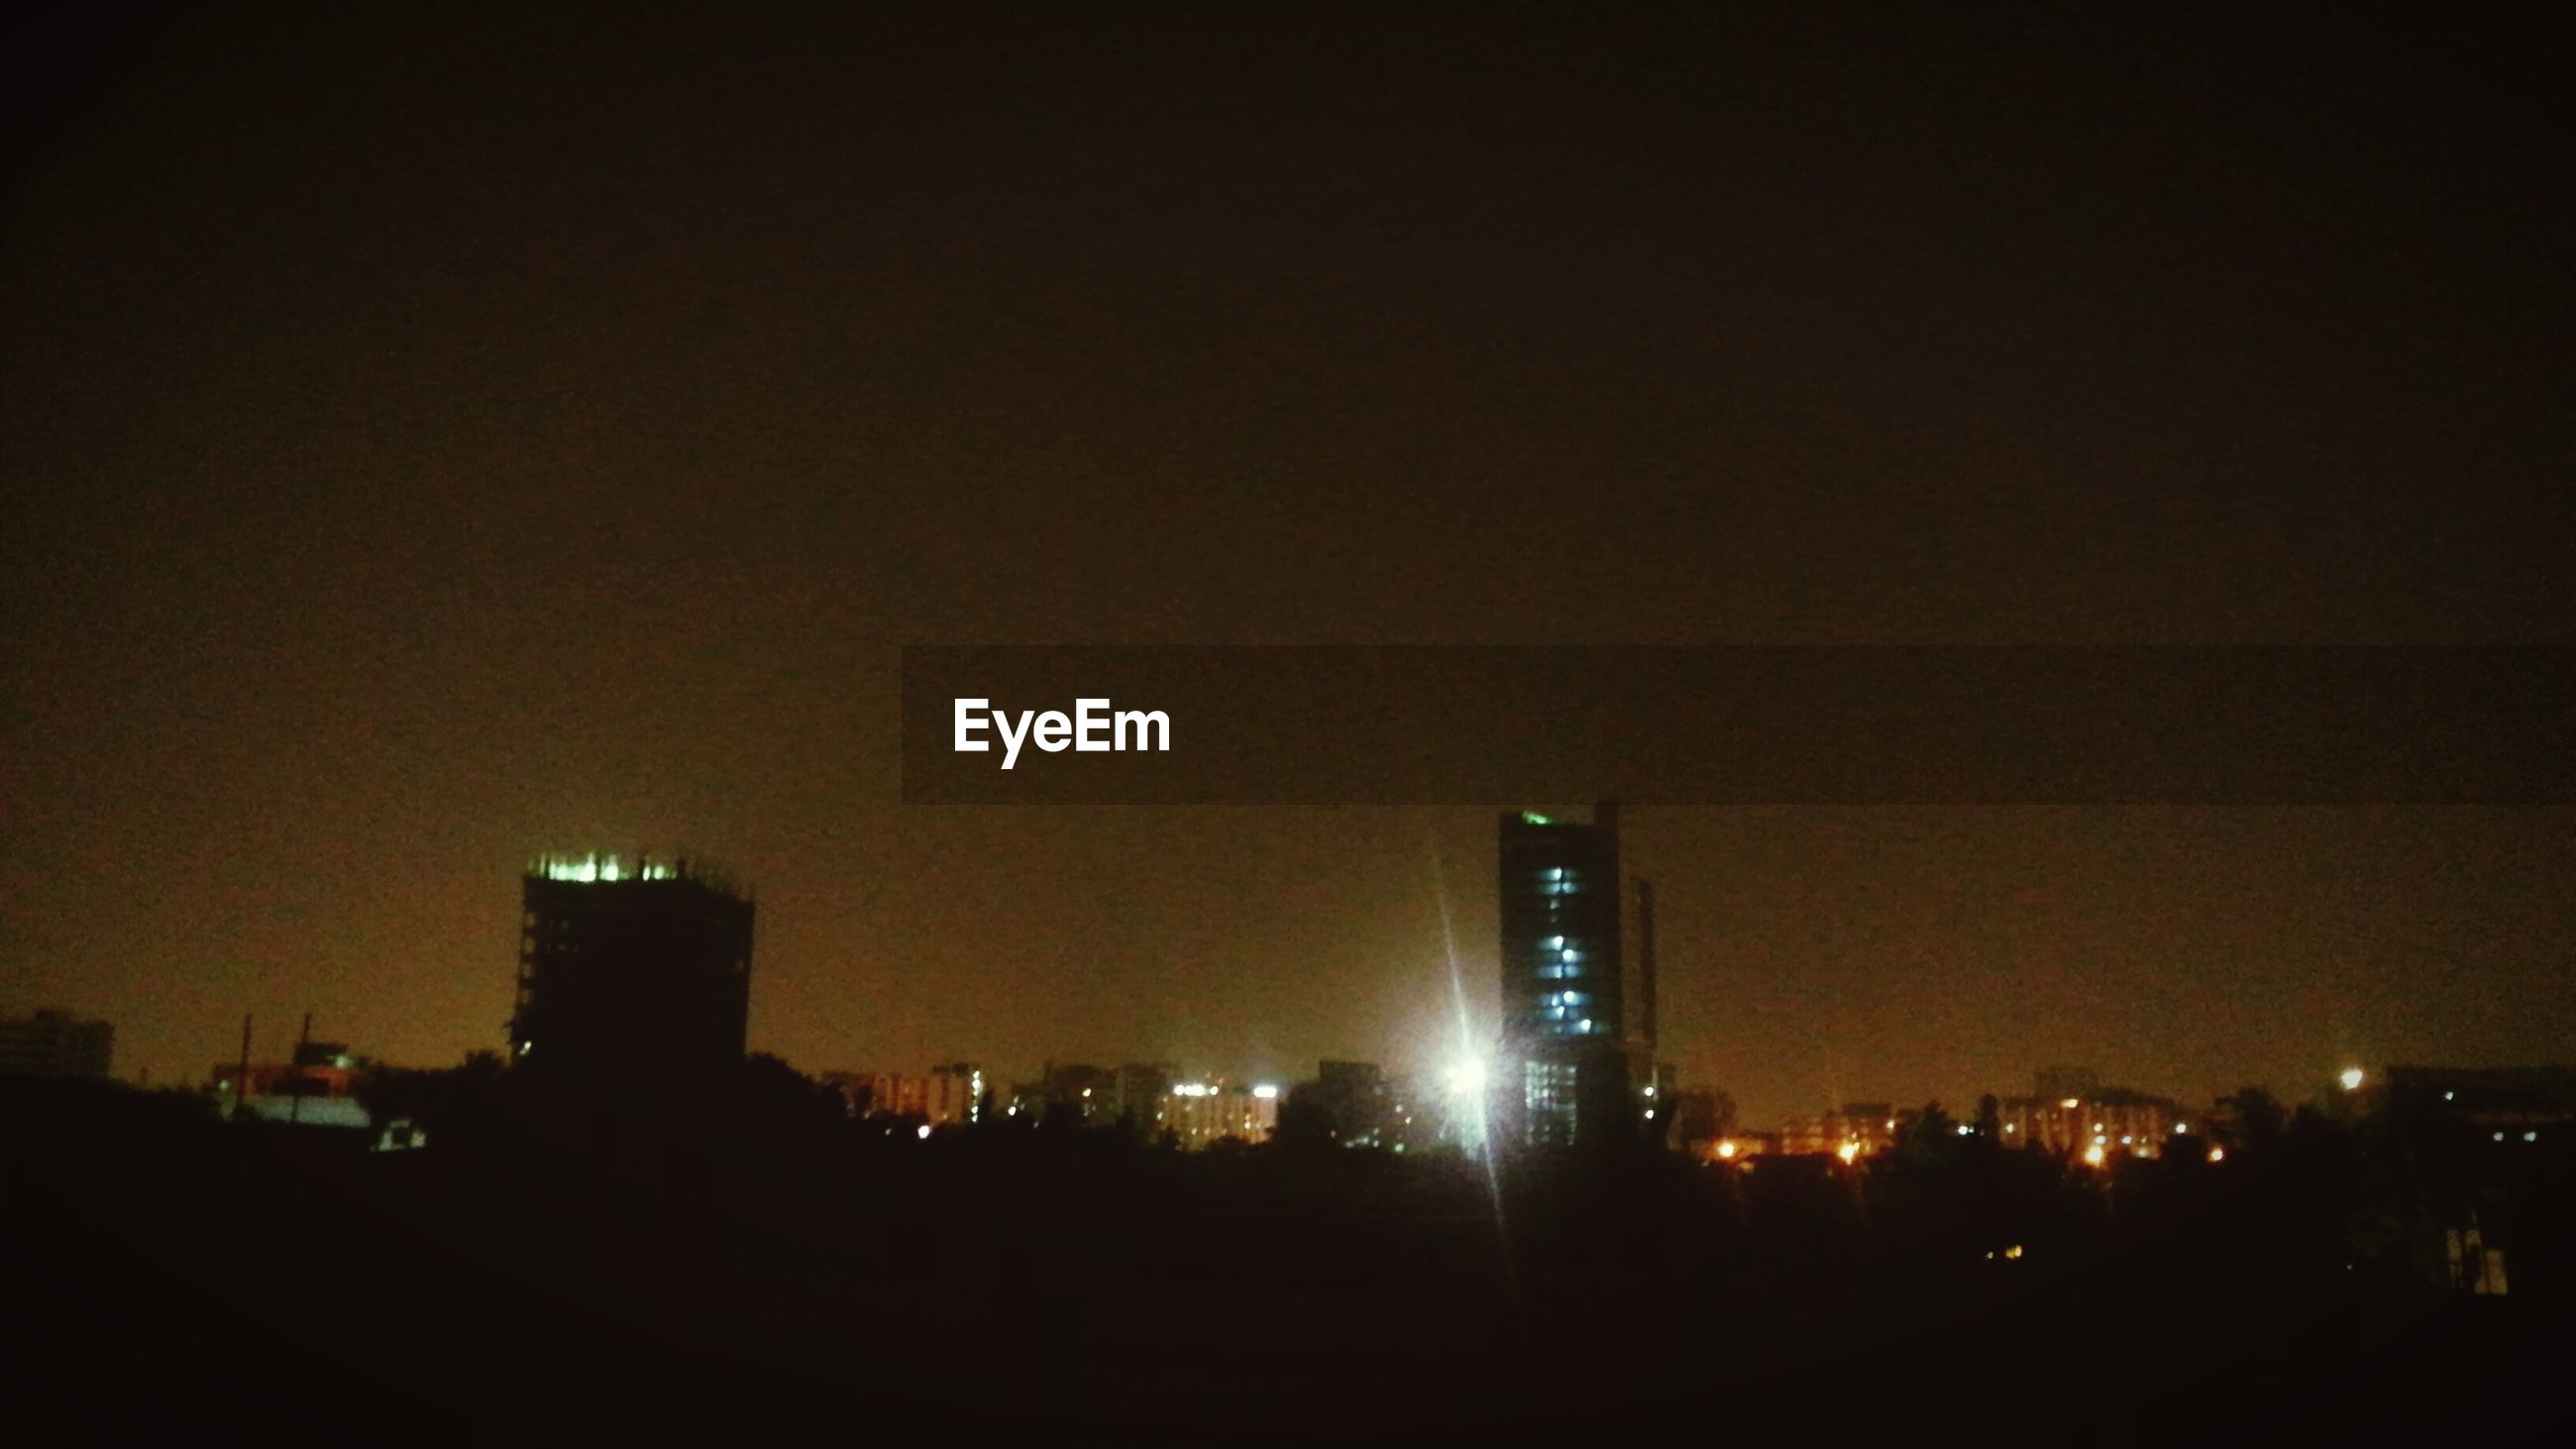 night, illuminated, building exterior, architecture, built structure, city, copy space, cityscape, dark, clear sky, skyscraper, urban skyline, silhouette, sky, city life, building, modern, tower, outdoors, residential building